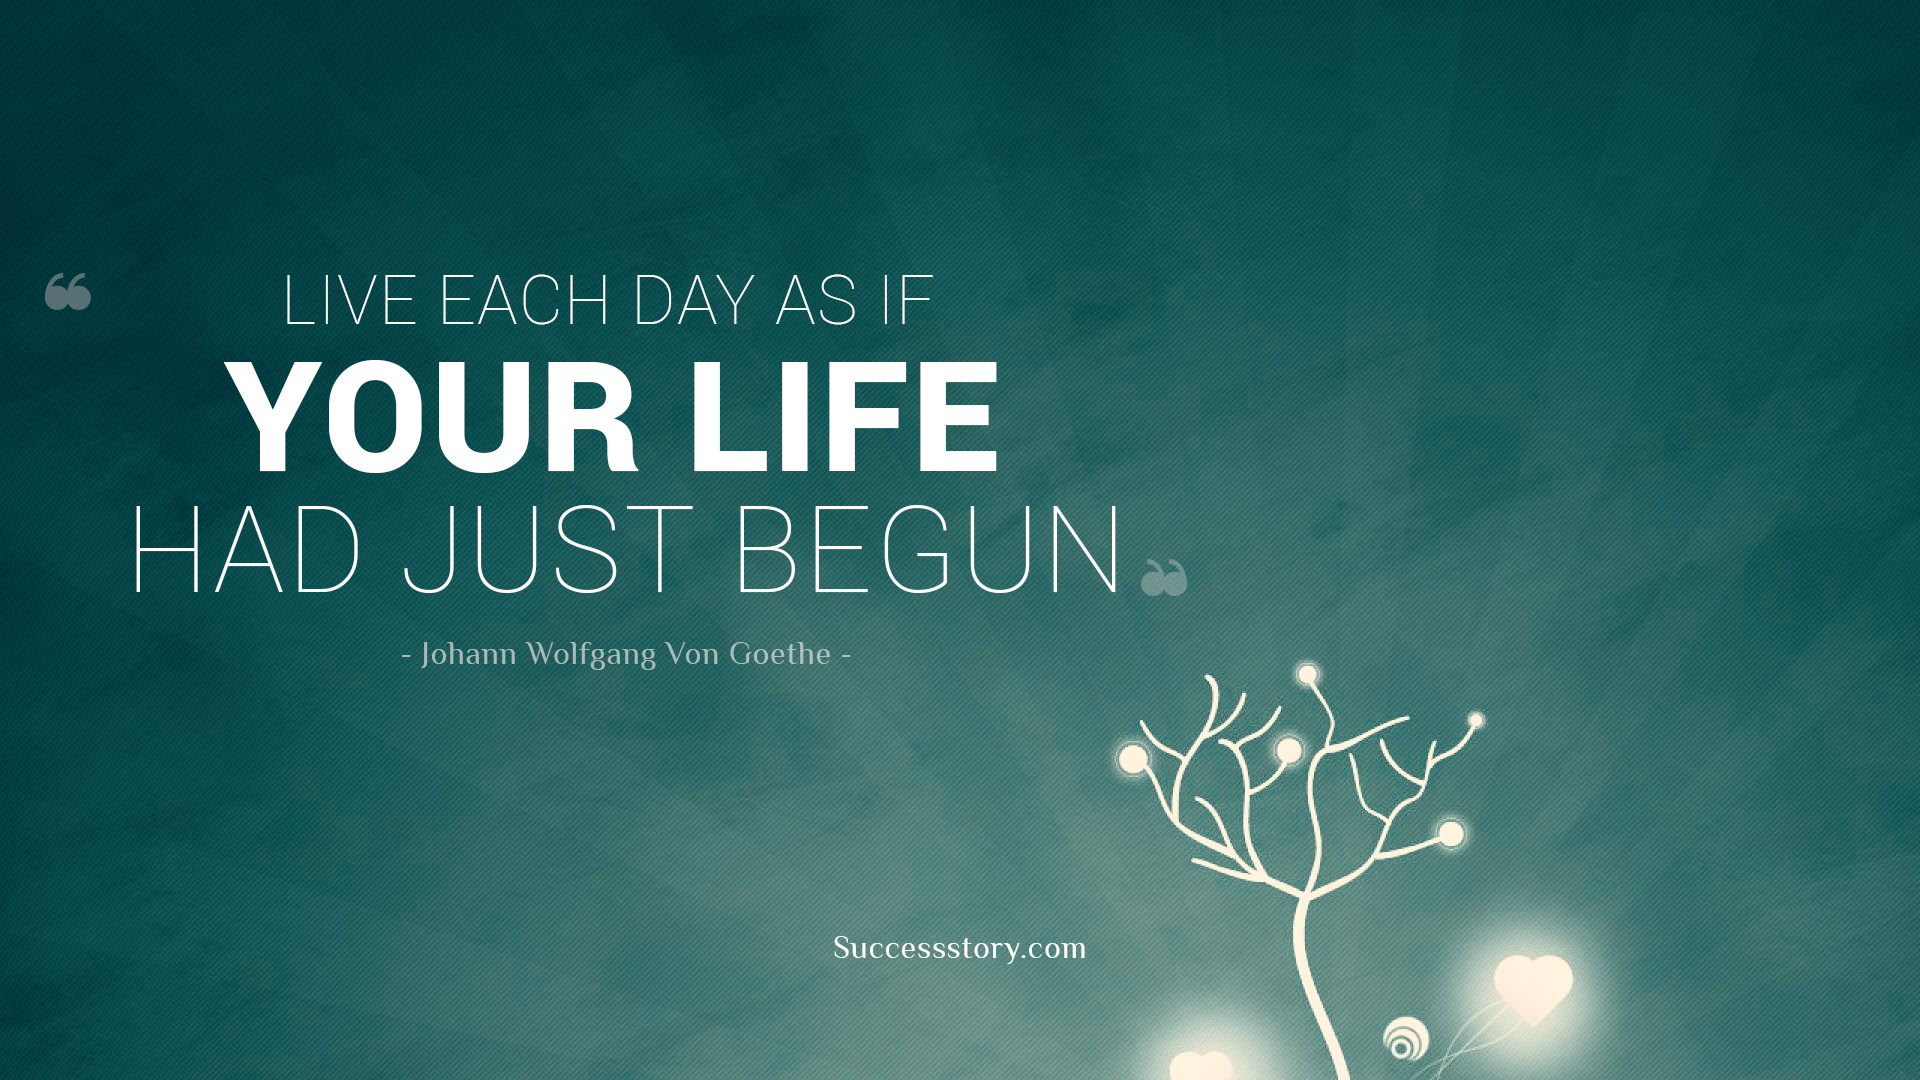 Live Life As If It Was Your Last Day Quote Inspiring Famous Quotes